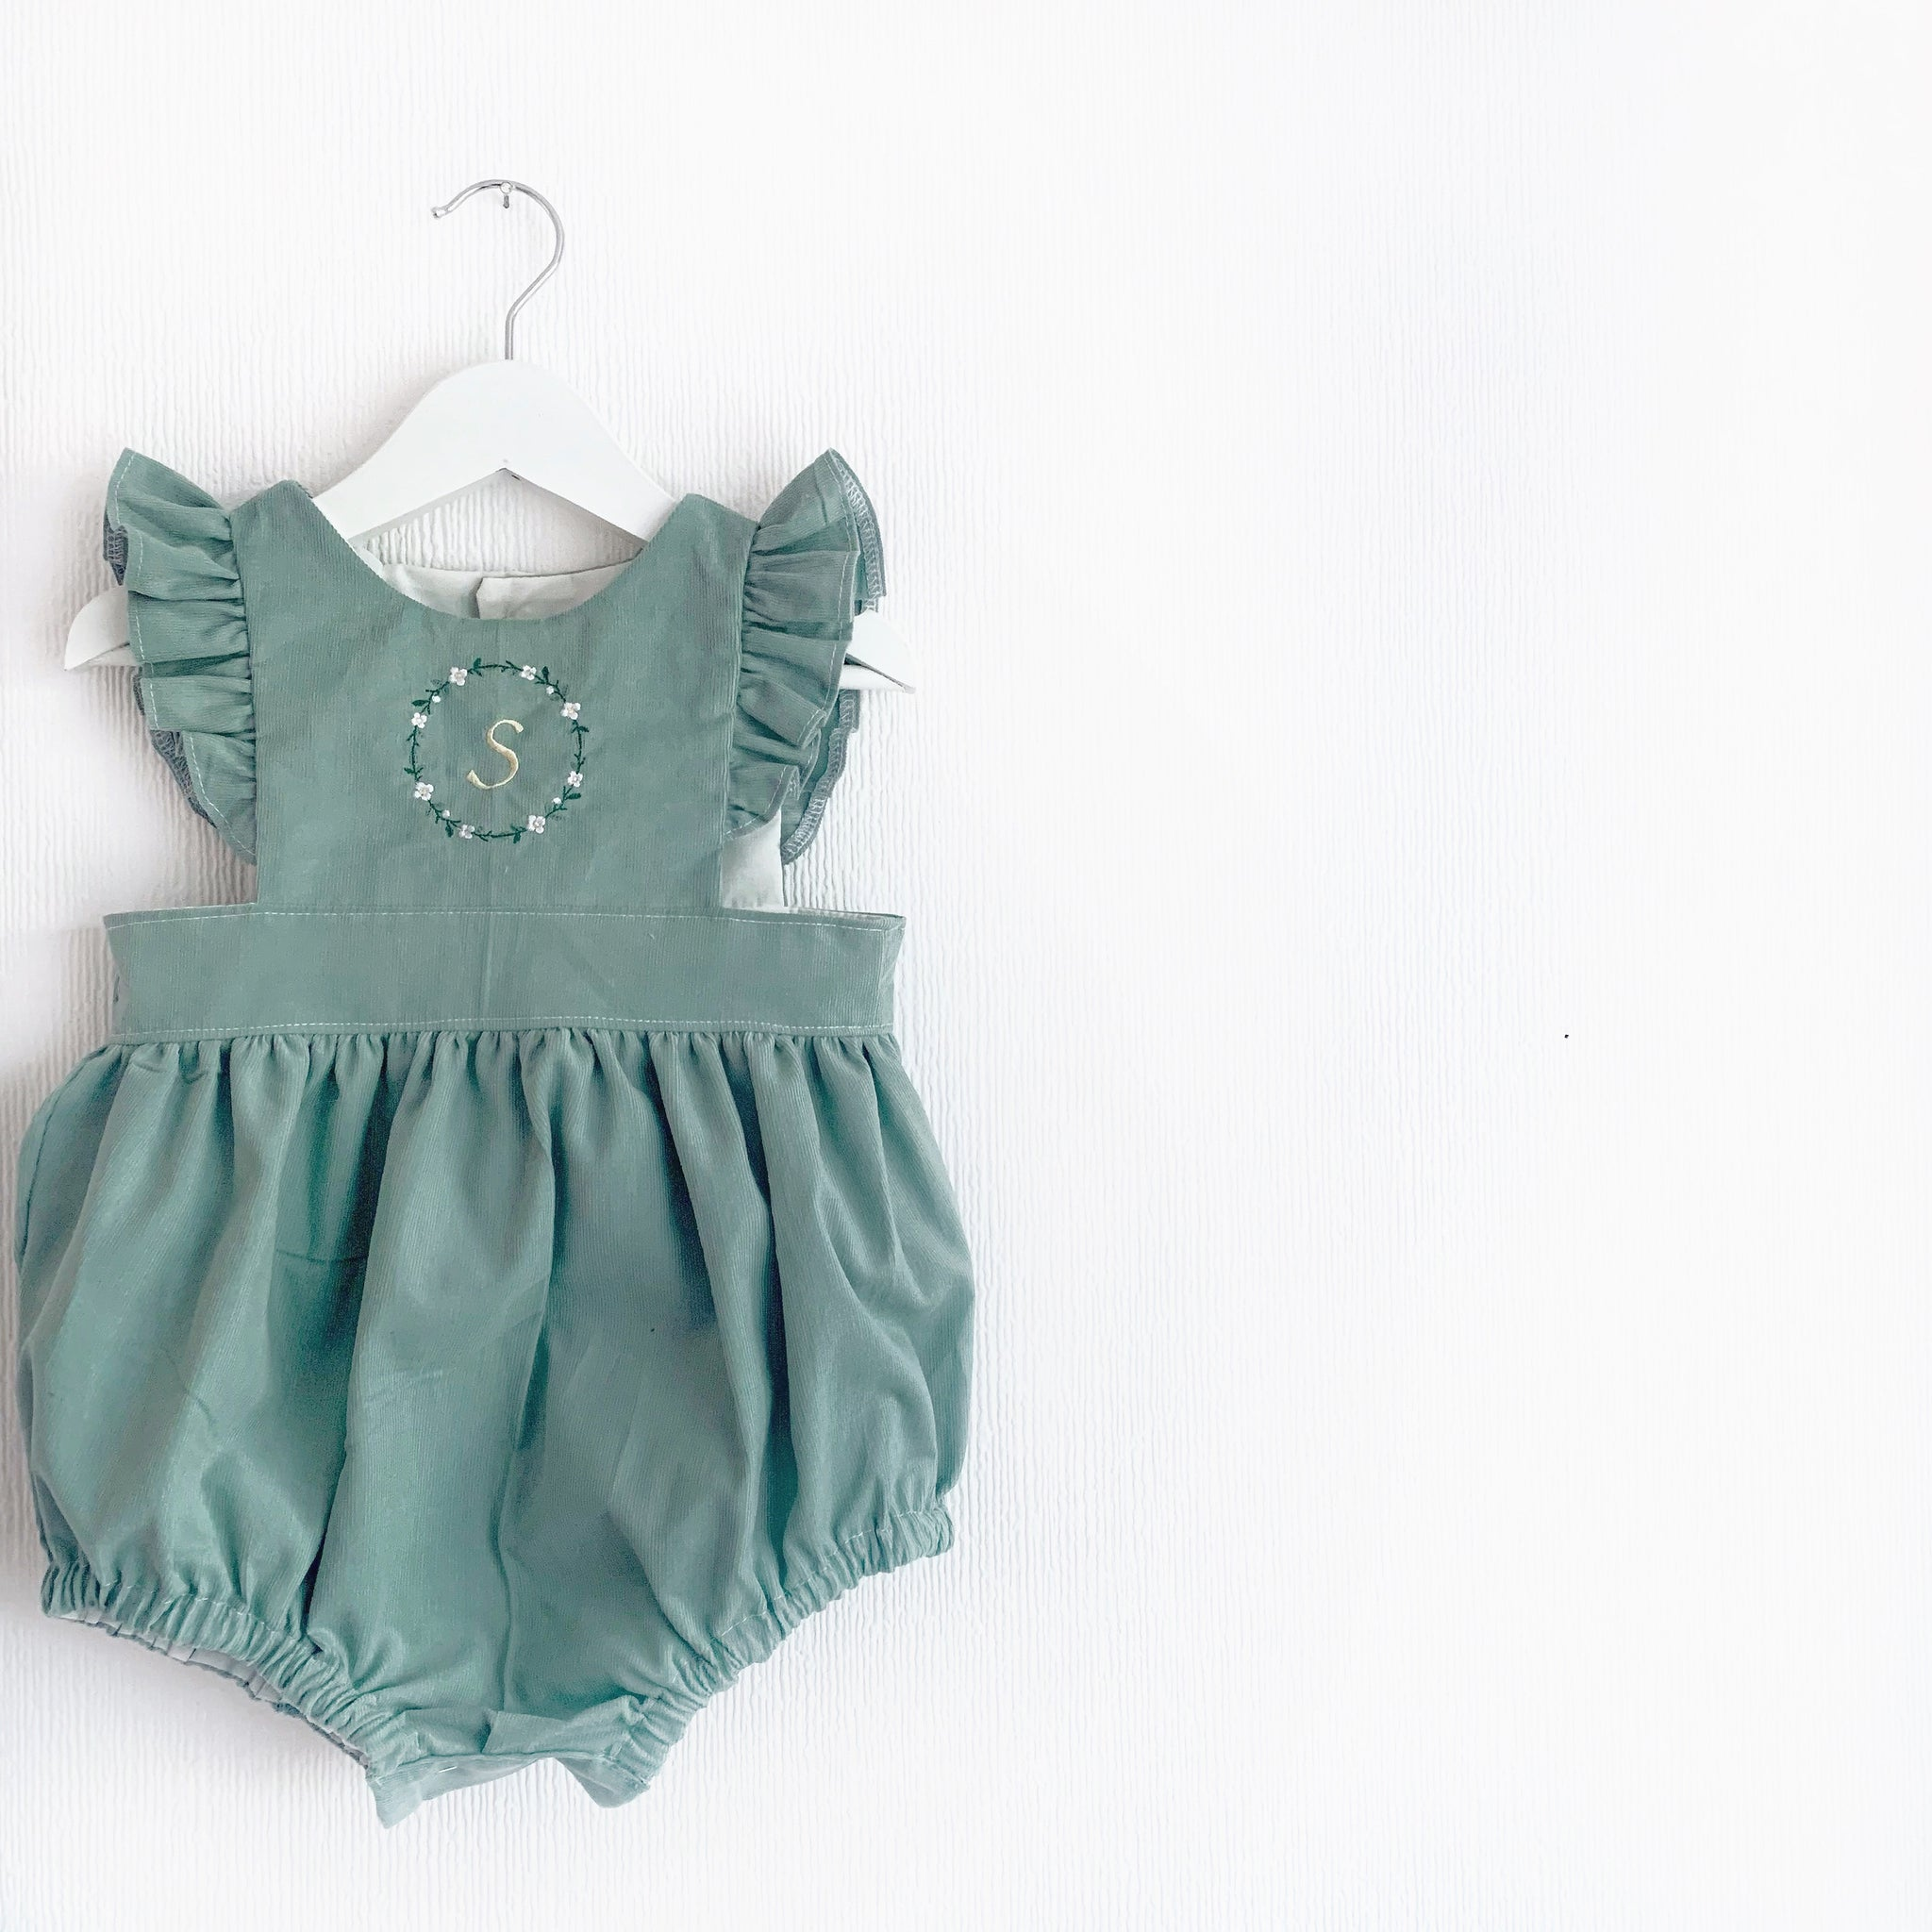 Sage daisy wreath pinafore; dress or romper